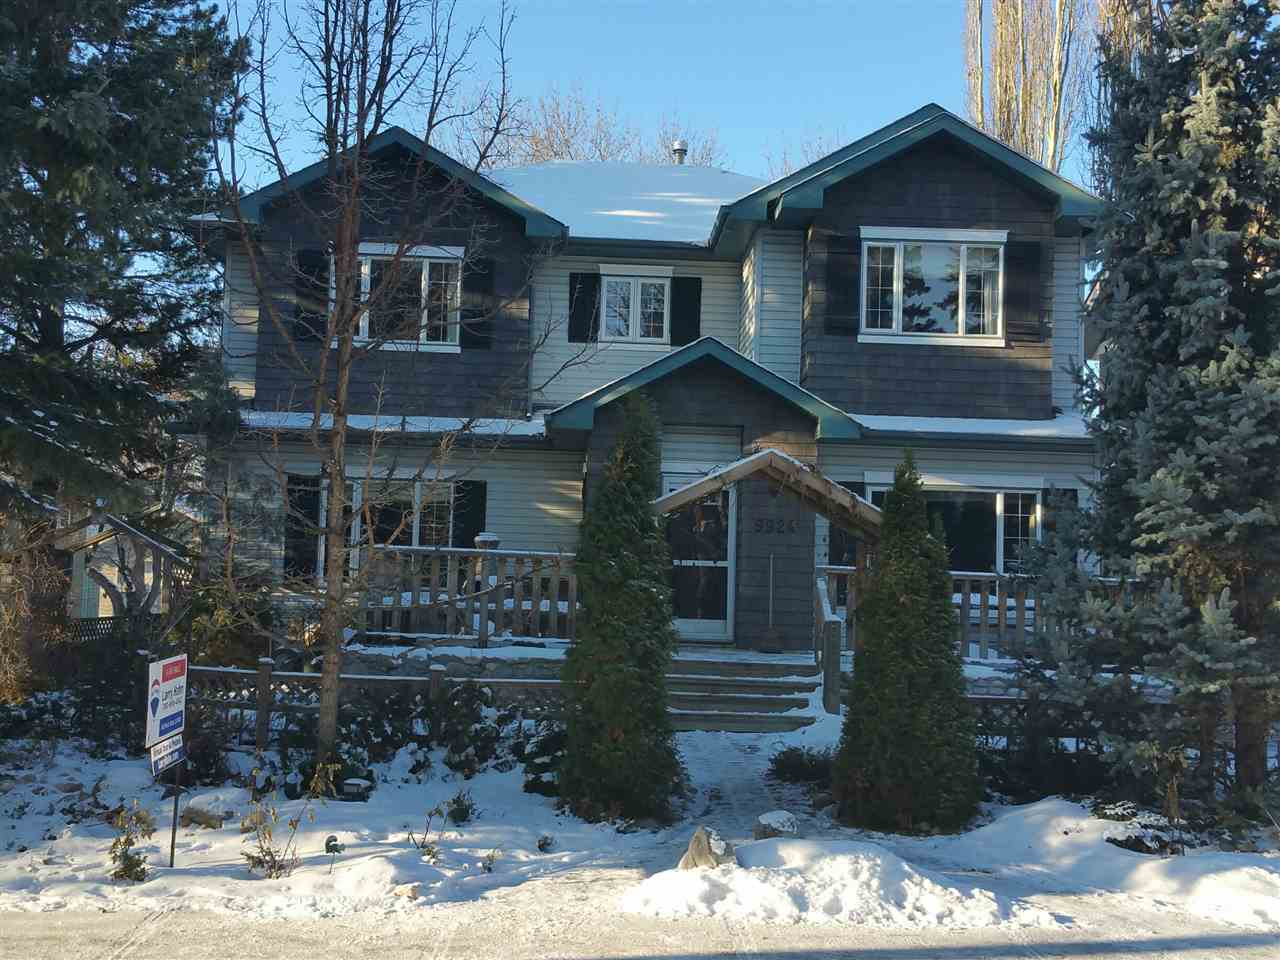 Main Photo: 9924 146 Street in Edmonton: Zone 10 House for sale : MLS® # E4083010